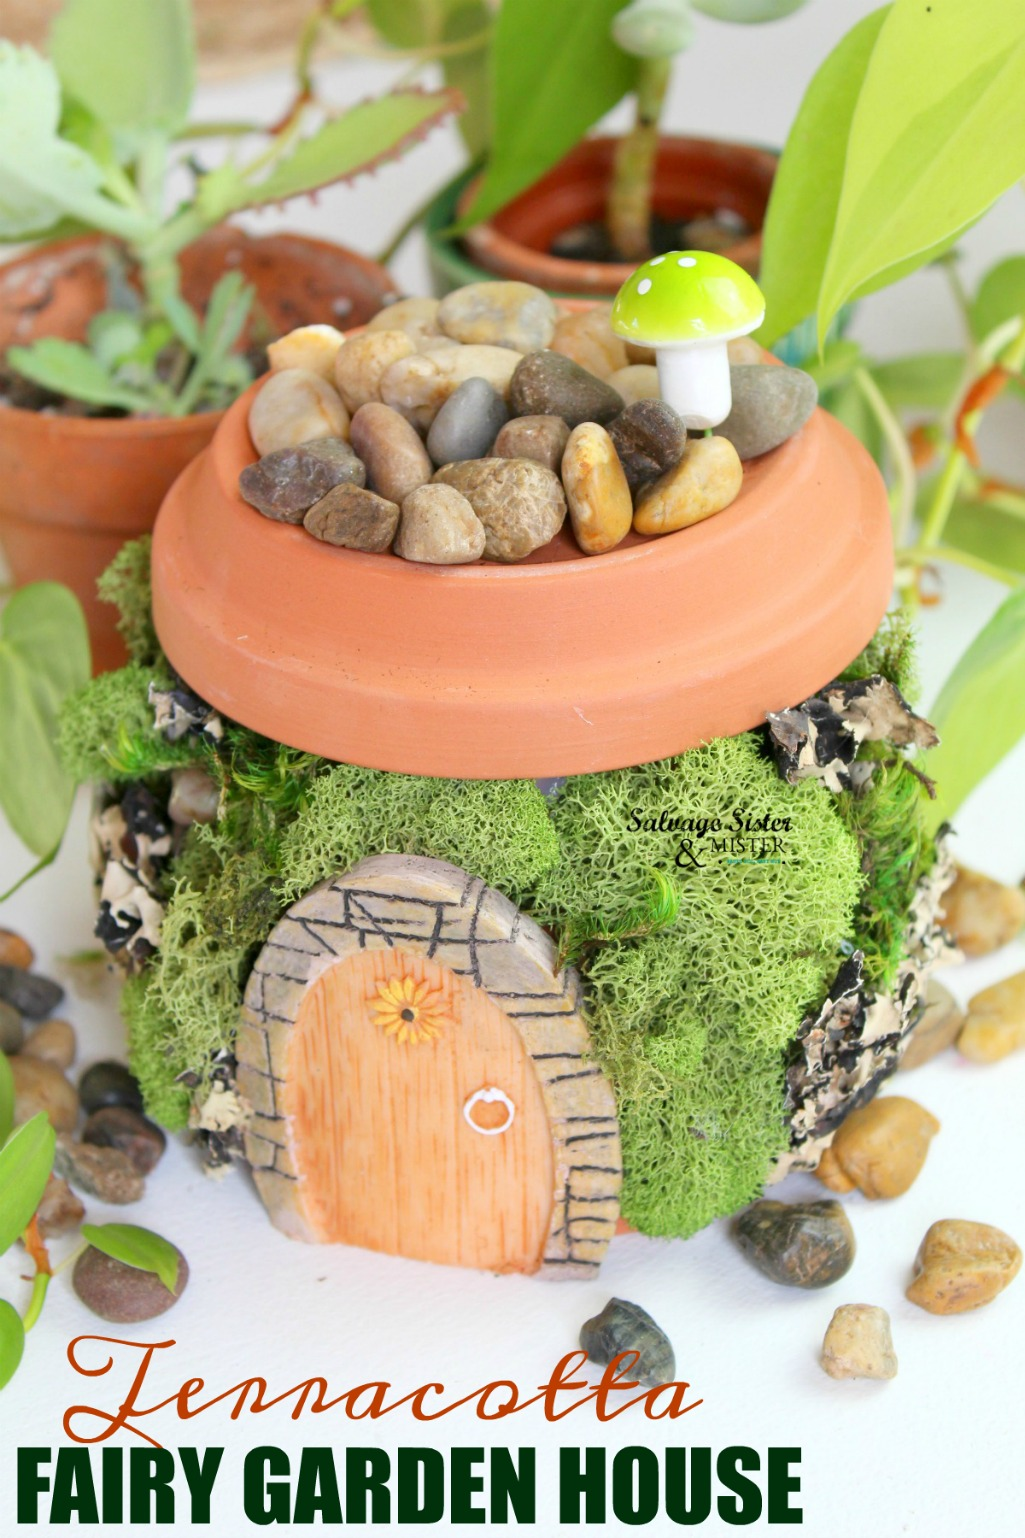 Terracotta Fairy Garden House Salvage Sister And Mister